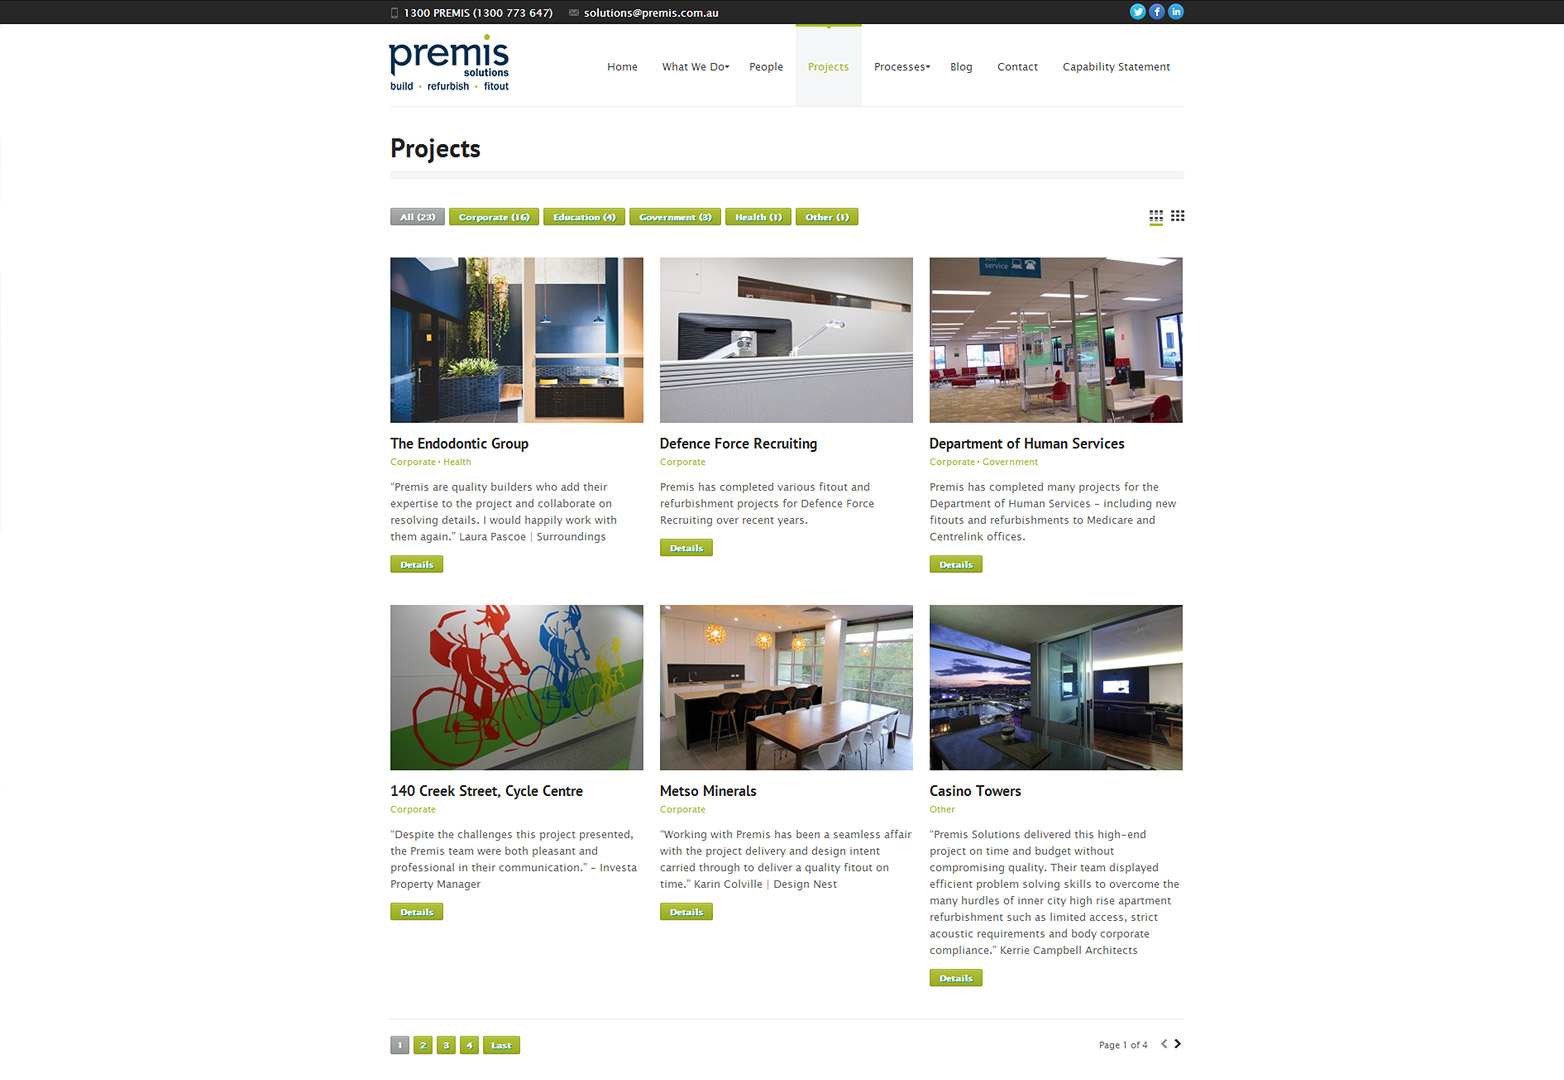 Premis Solutions Projects Page